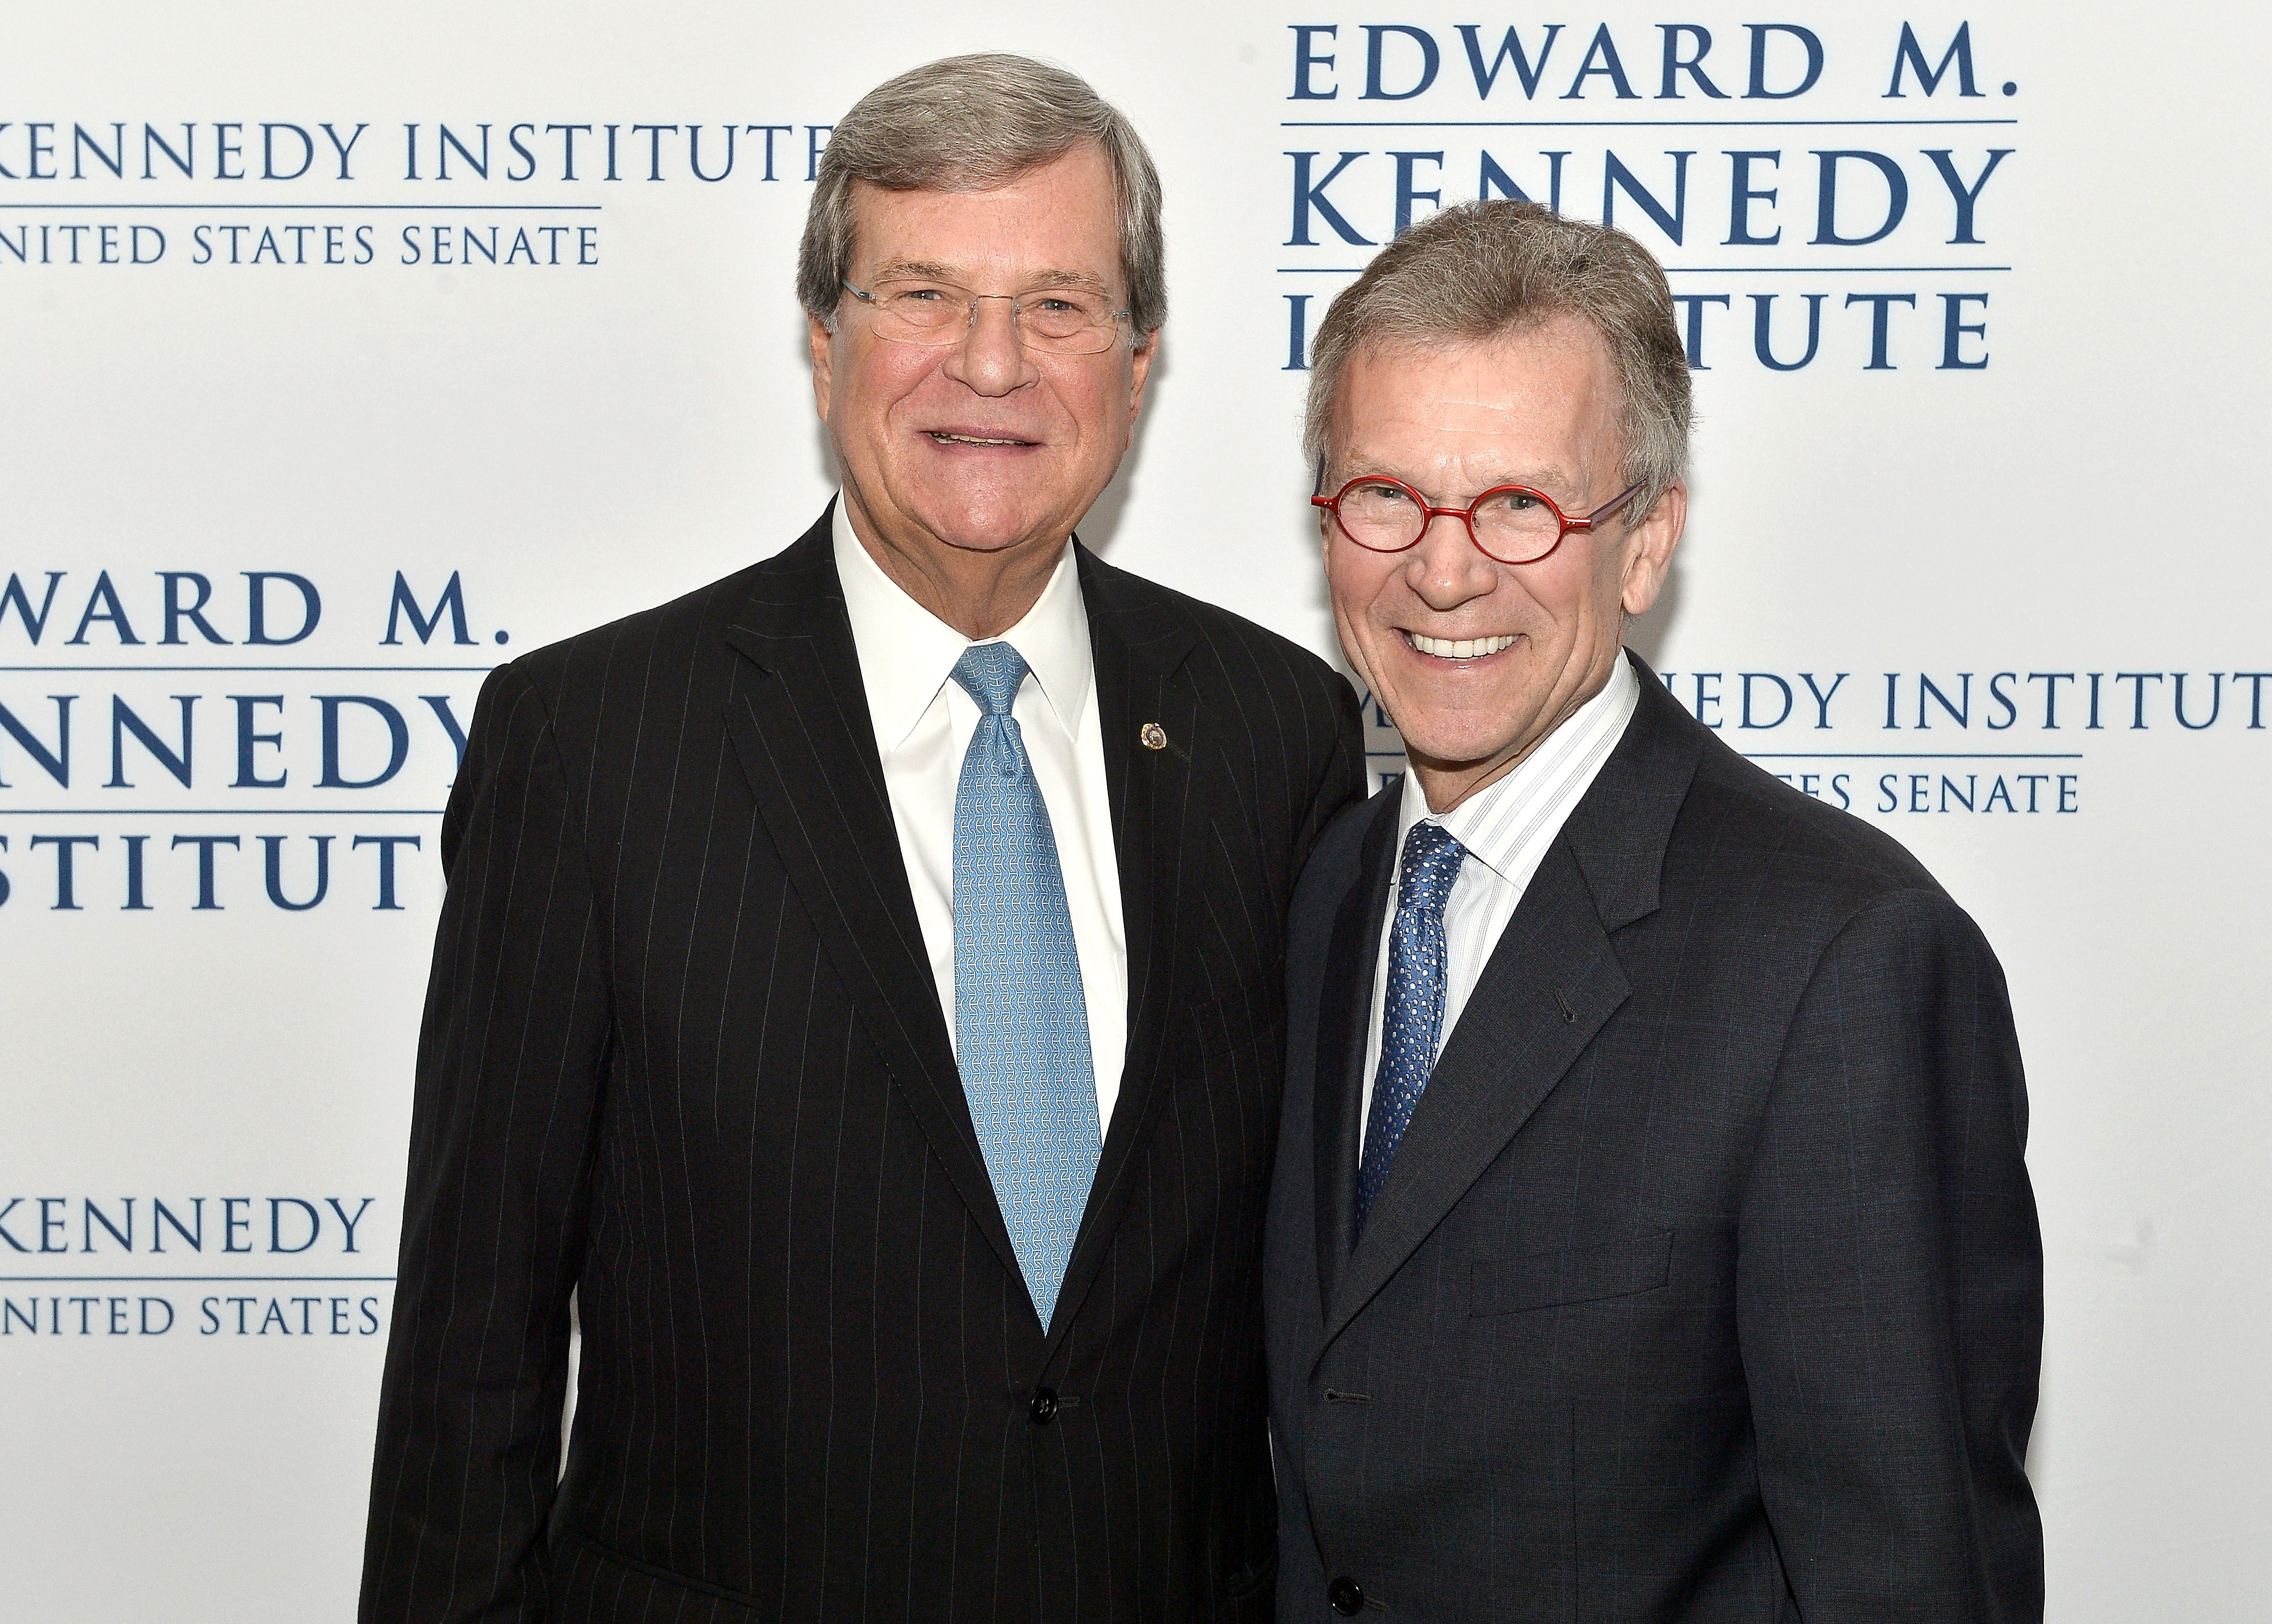 Senators Trent Lott and Tom Daschle attend the Edward M. Kennedy Institute for the U.S. Senate Opening Night Gala and Dedication in Boston on March 29, 2015.